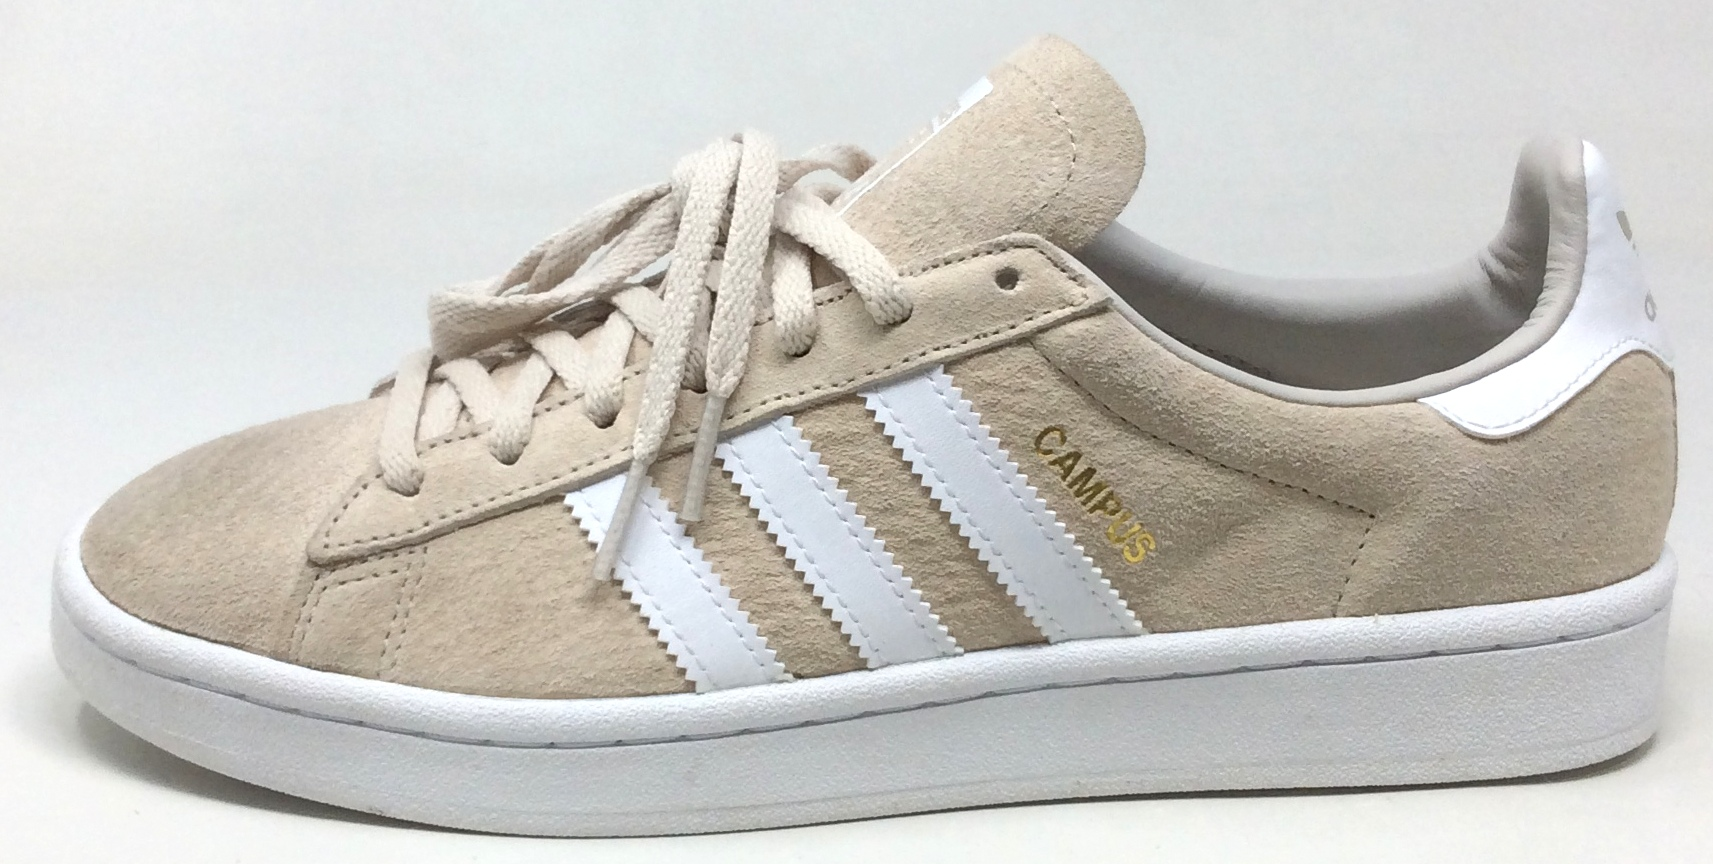 Patria Repegar creer  Adidas Women's Campus Casual Flat Fashion Shoes Light Brown White Size 9 M  US   eBay